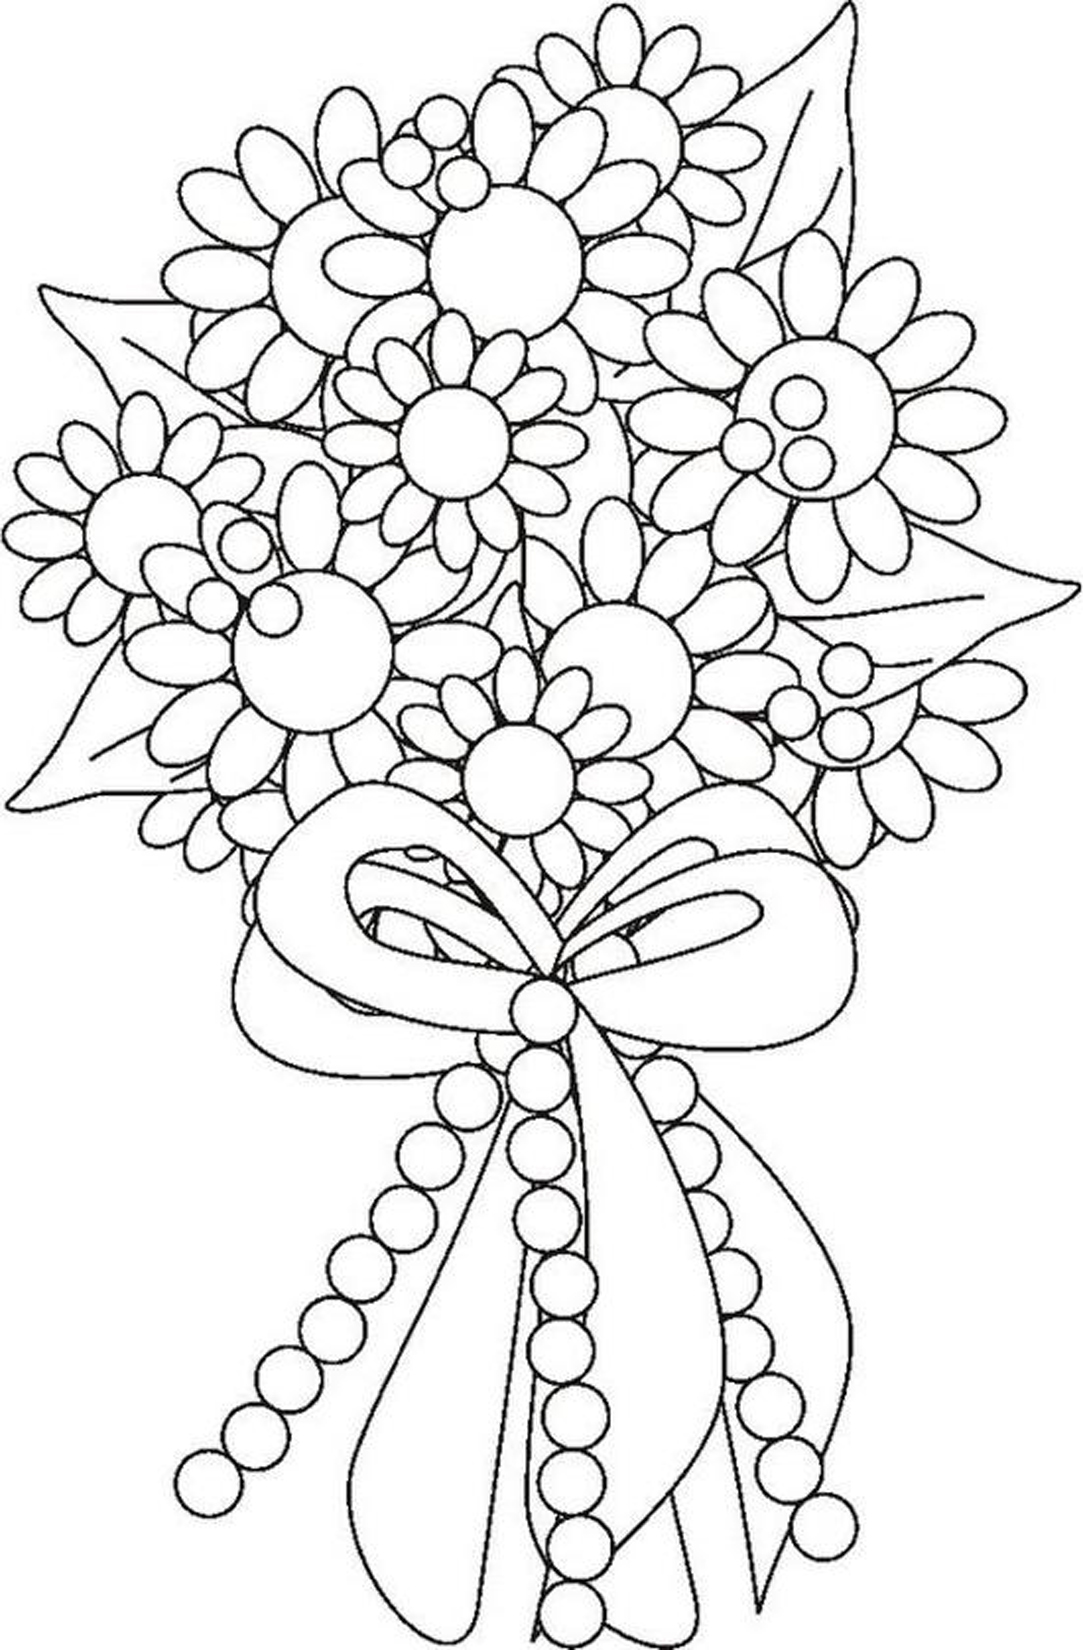 95 dessins de coloriage fleurs d 39 t imprimer. Black Bedroom Furniture Sets. Home Design Ideas